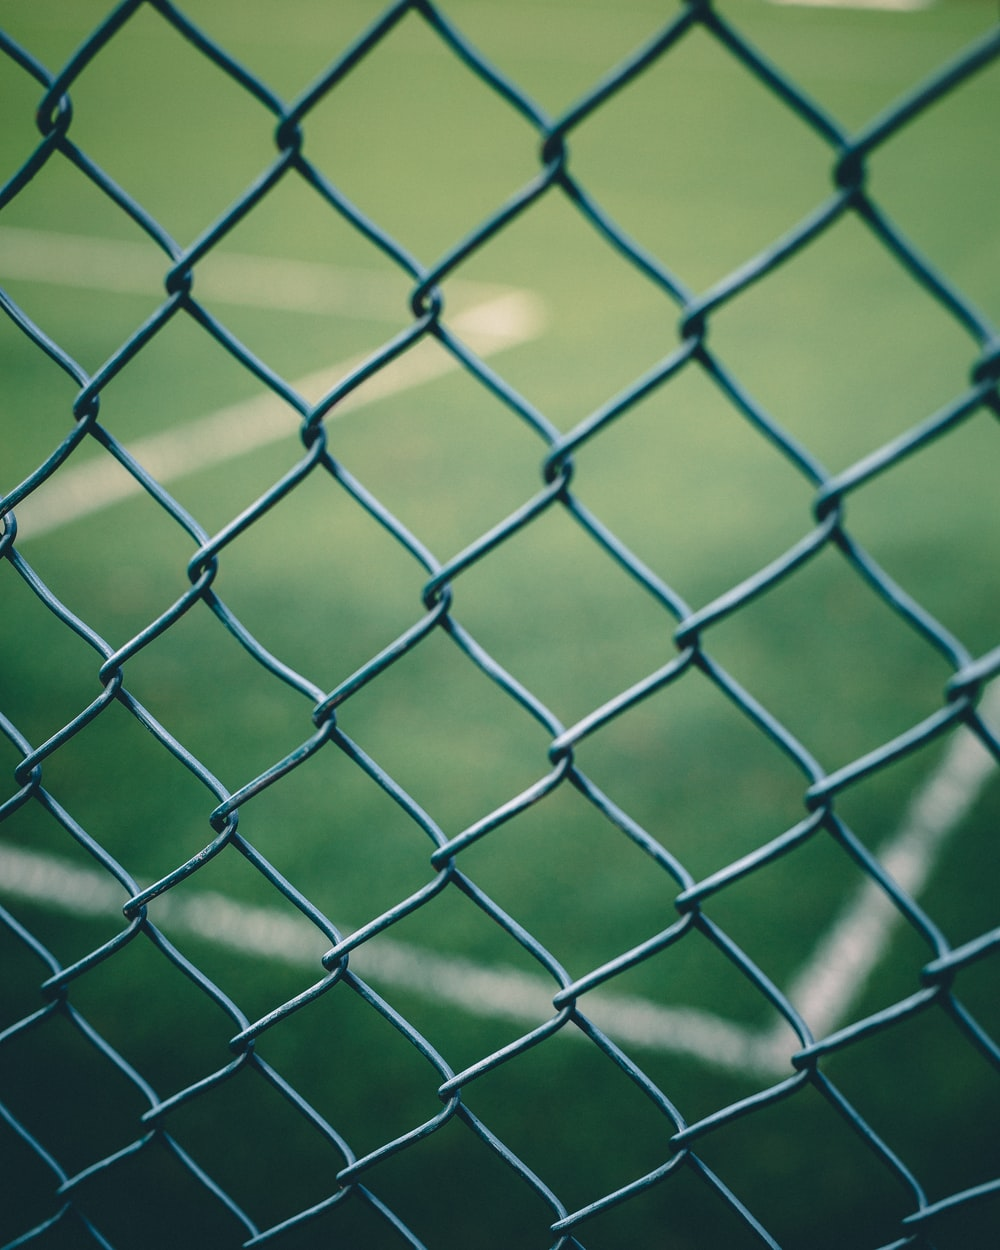 close-up photography of fences